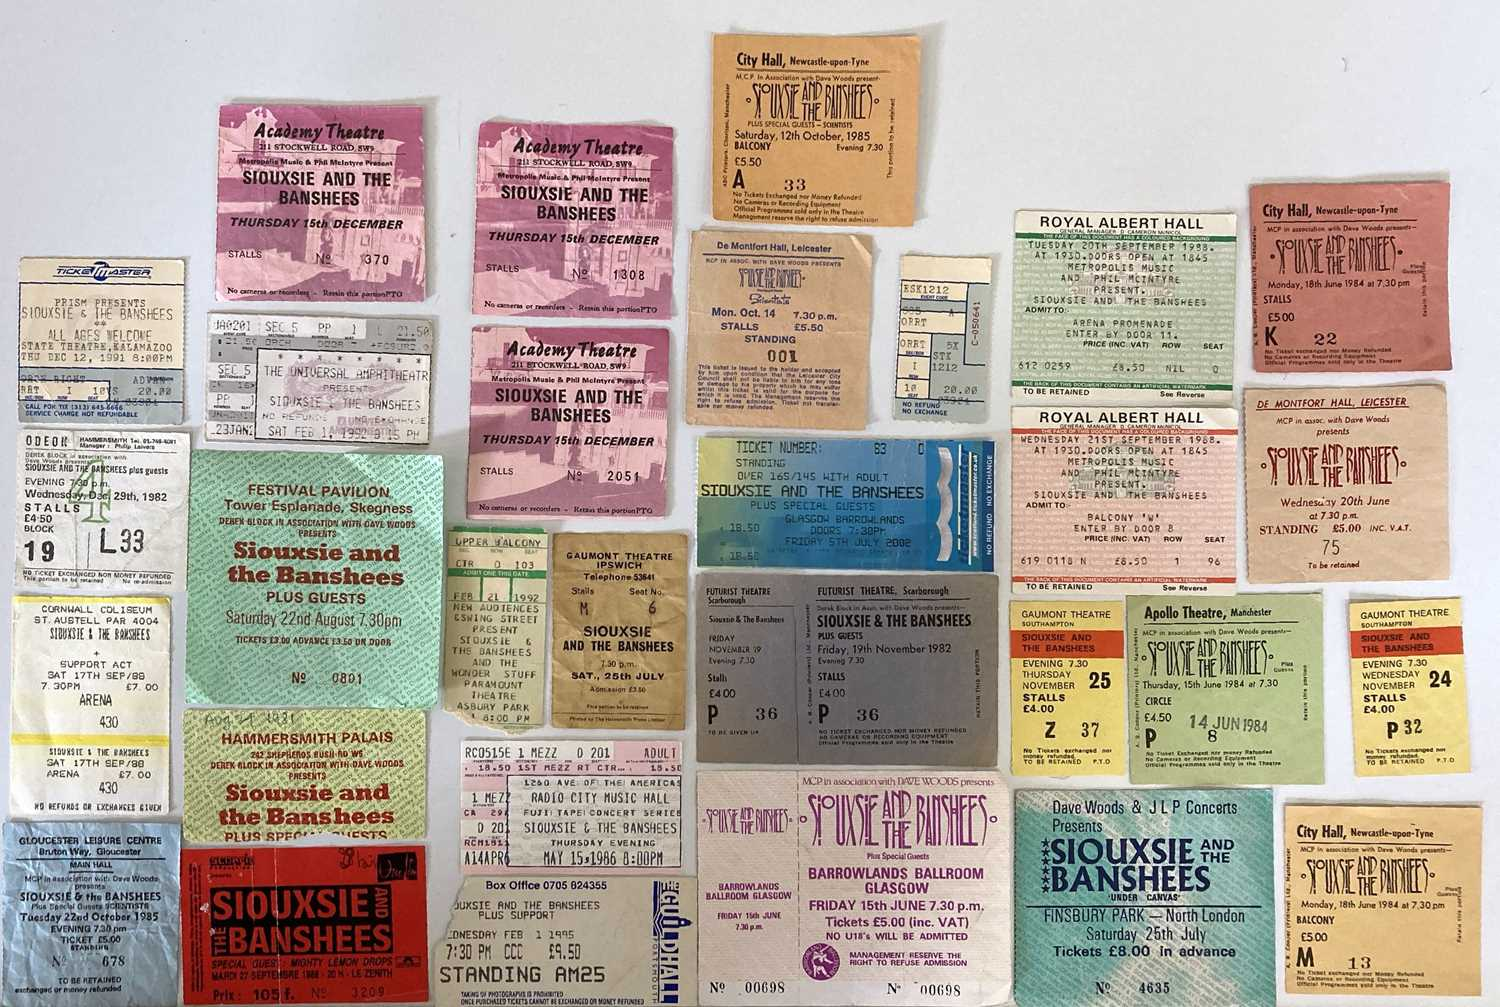 SIOUXSIE AND THE BANSHEES CONCERT TICKETS.